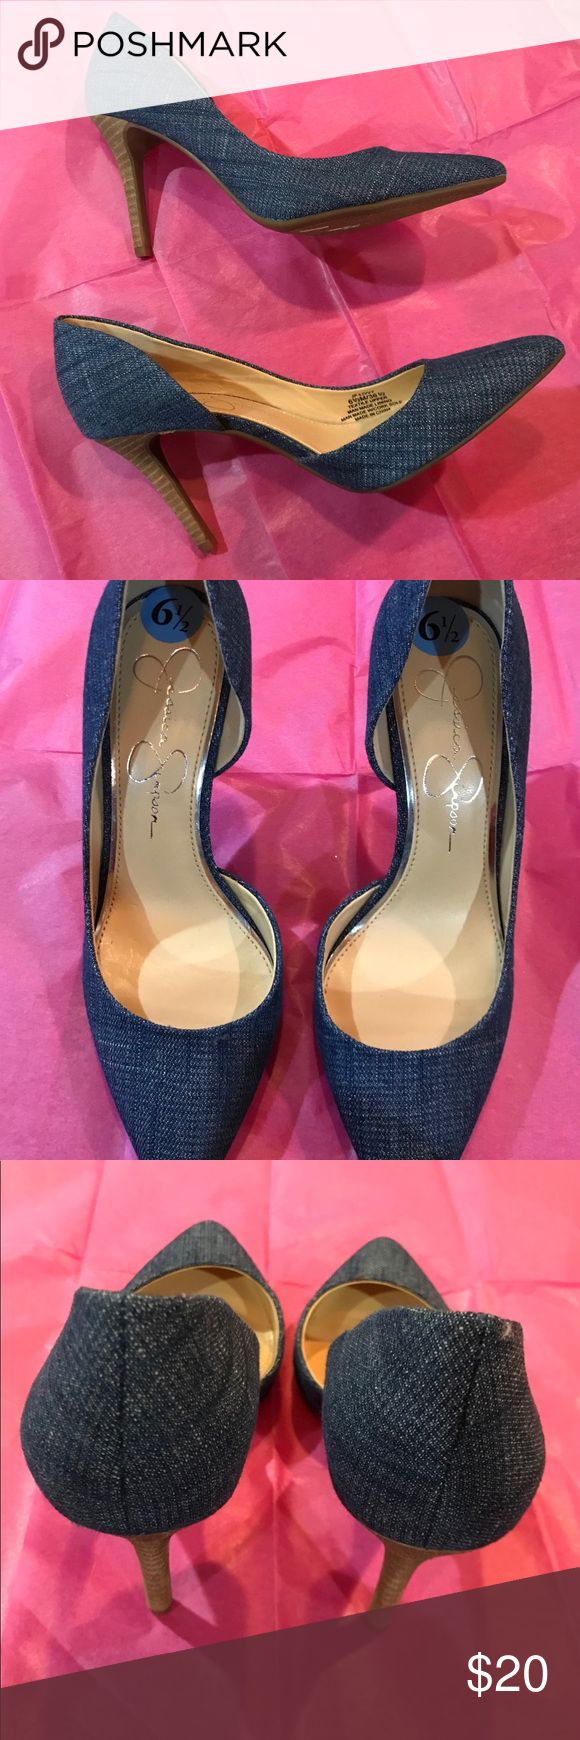 NEW Jessica Simpson Jean Heels-6 1/2 NEW Jessica Simpson Jean Heels-6 1/2.  Step out in style in these jean heels.  Adorable and classy! Jessica Simpson Shoes Heels